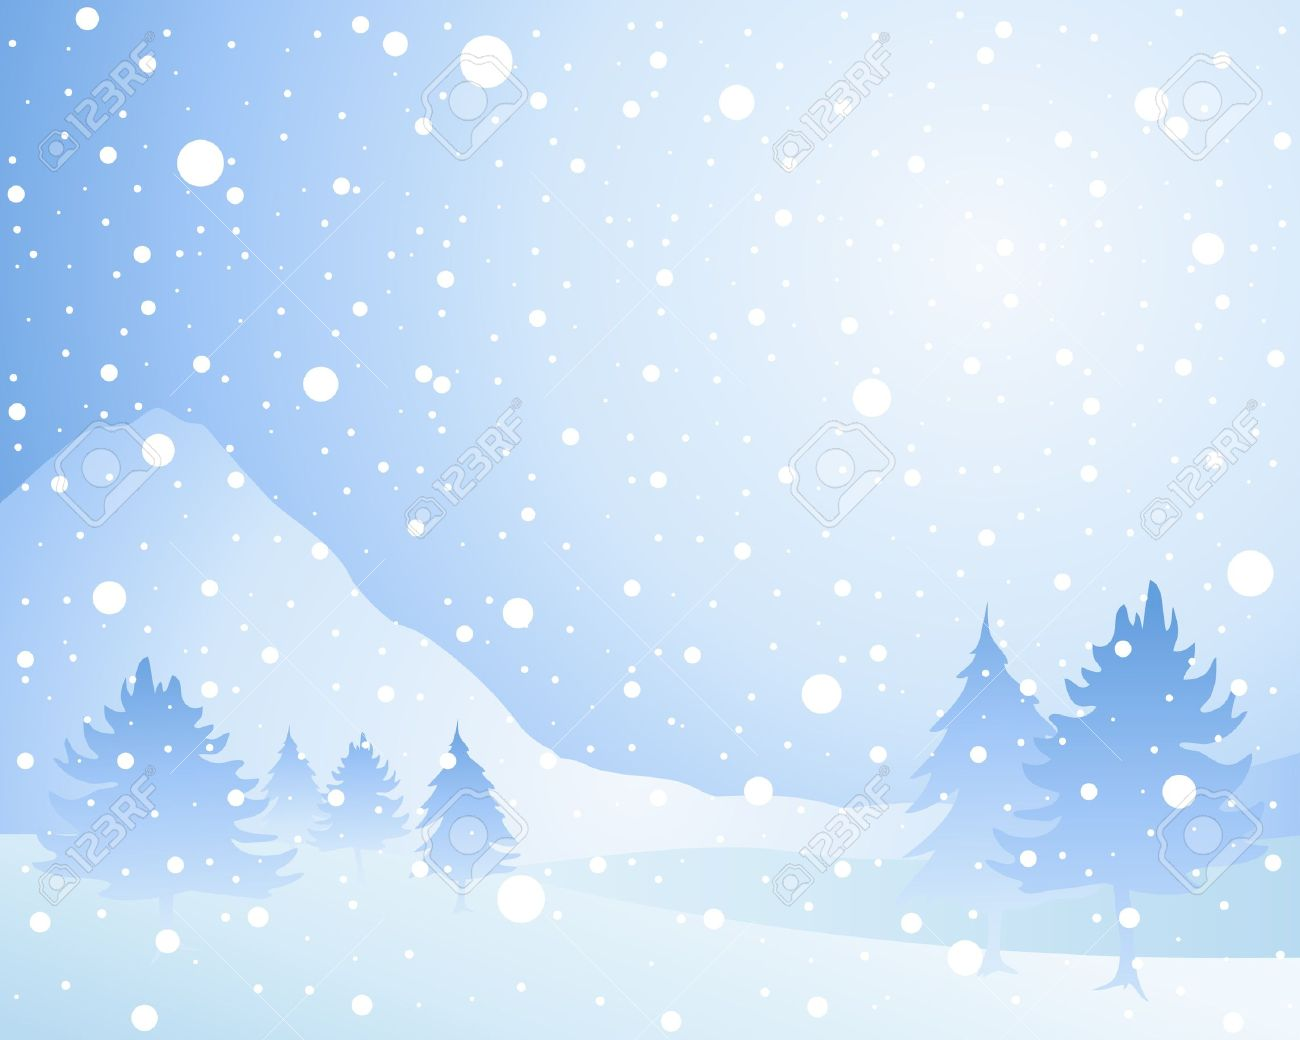 an illustration of a cold winter seasonal christmas landscape with misty fir trees in a snow shower under an icy blue sky Stock Vector - 16244327